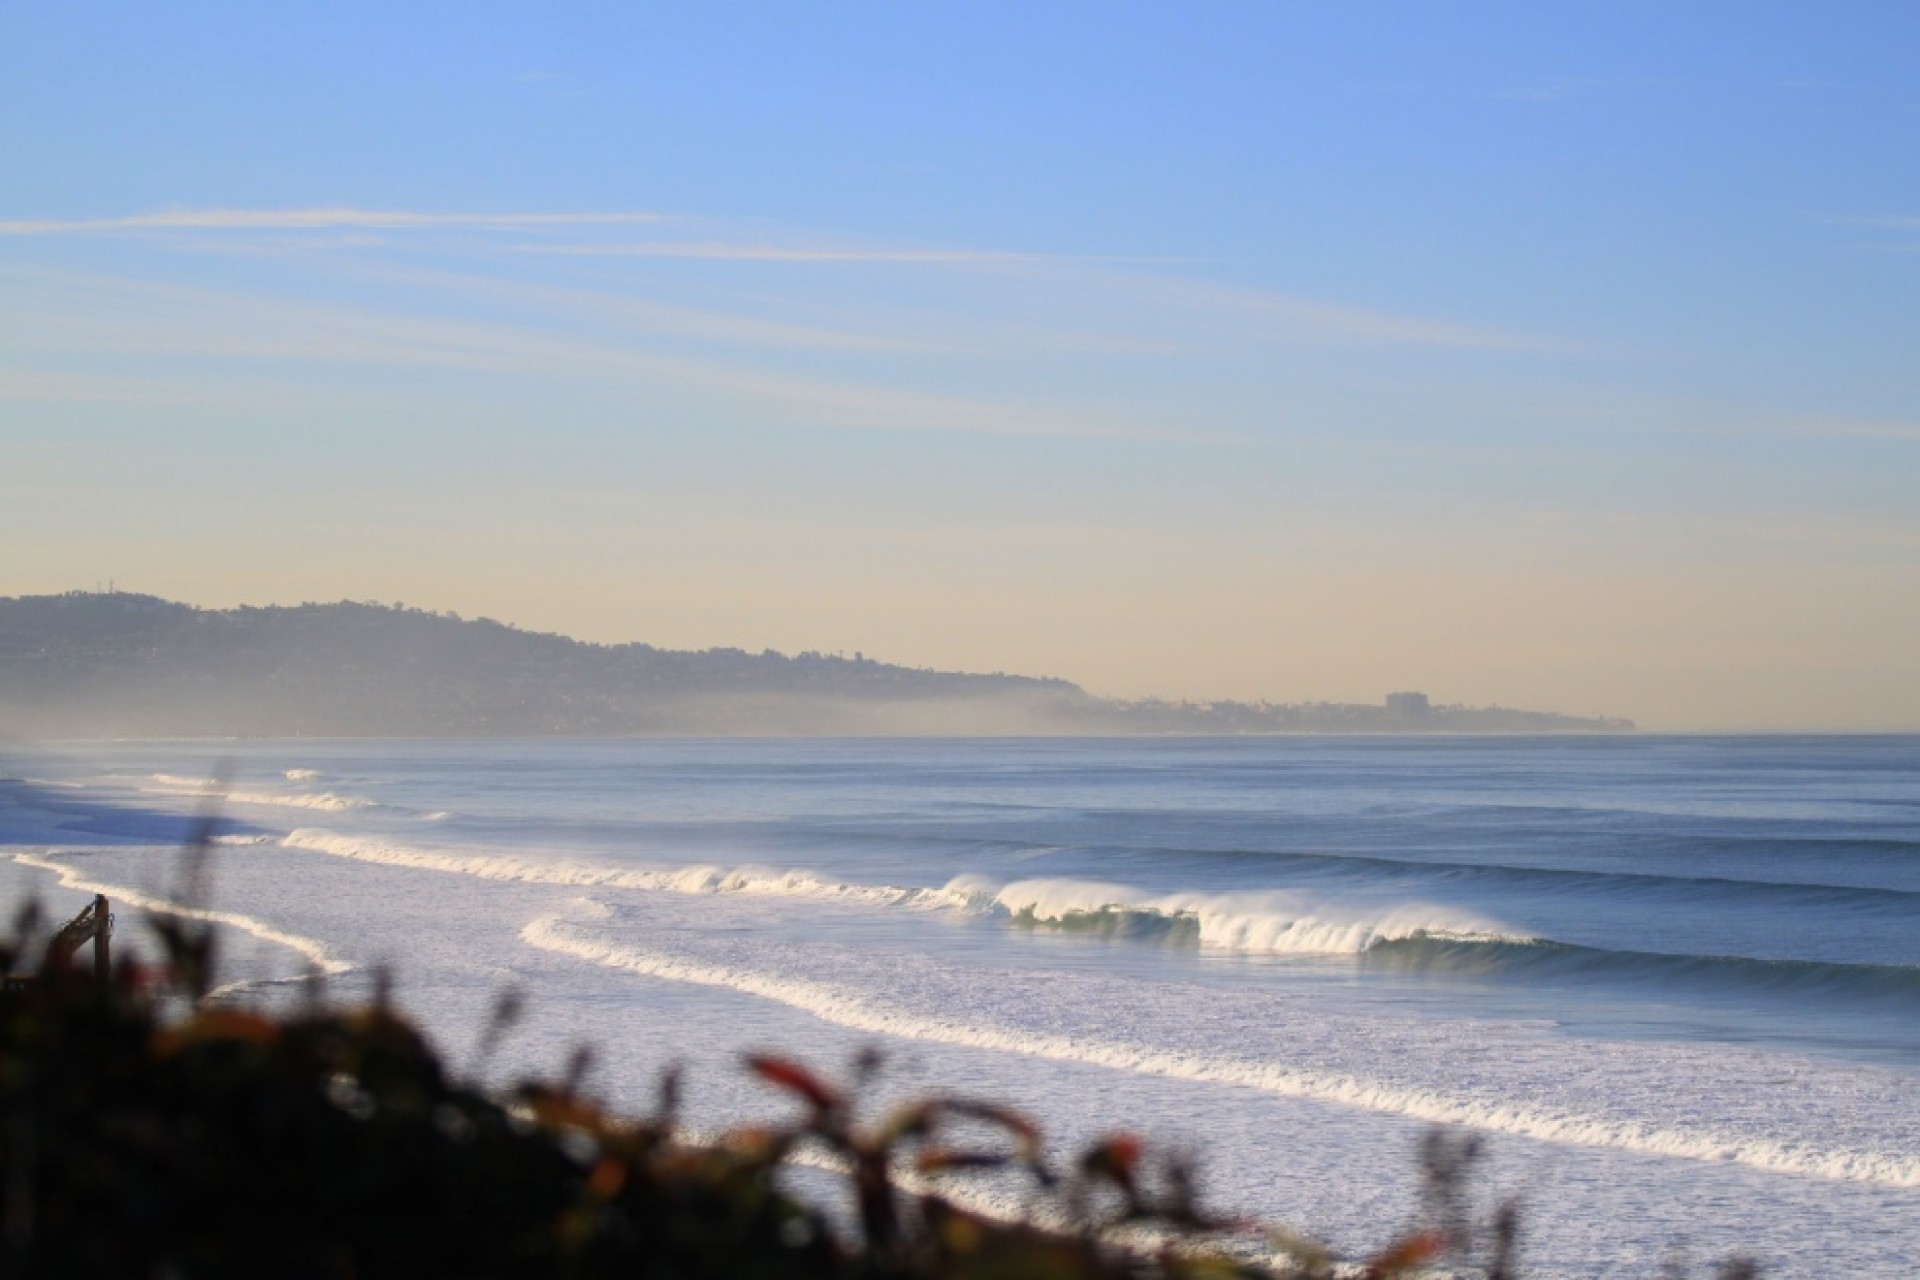 Brendan McLaughlin's photo of Torrey Pines/Blacks Beach